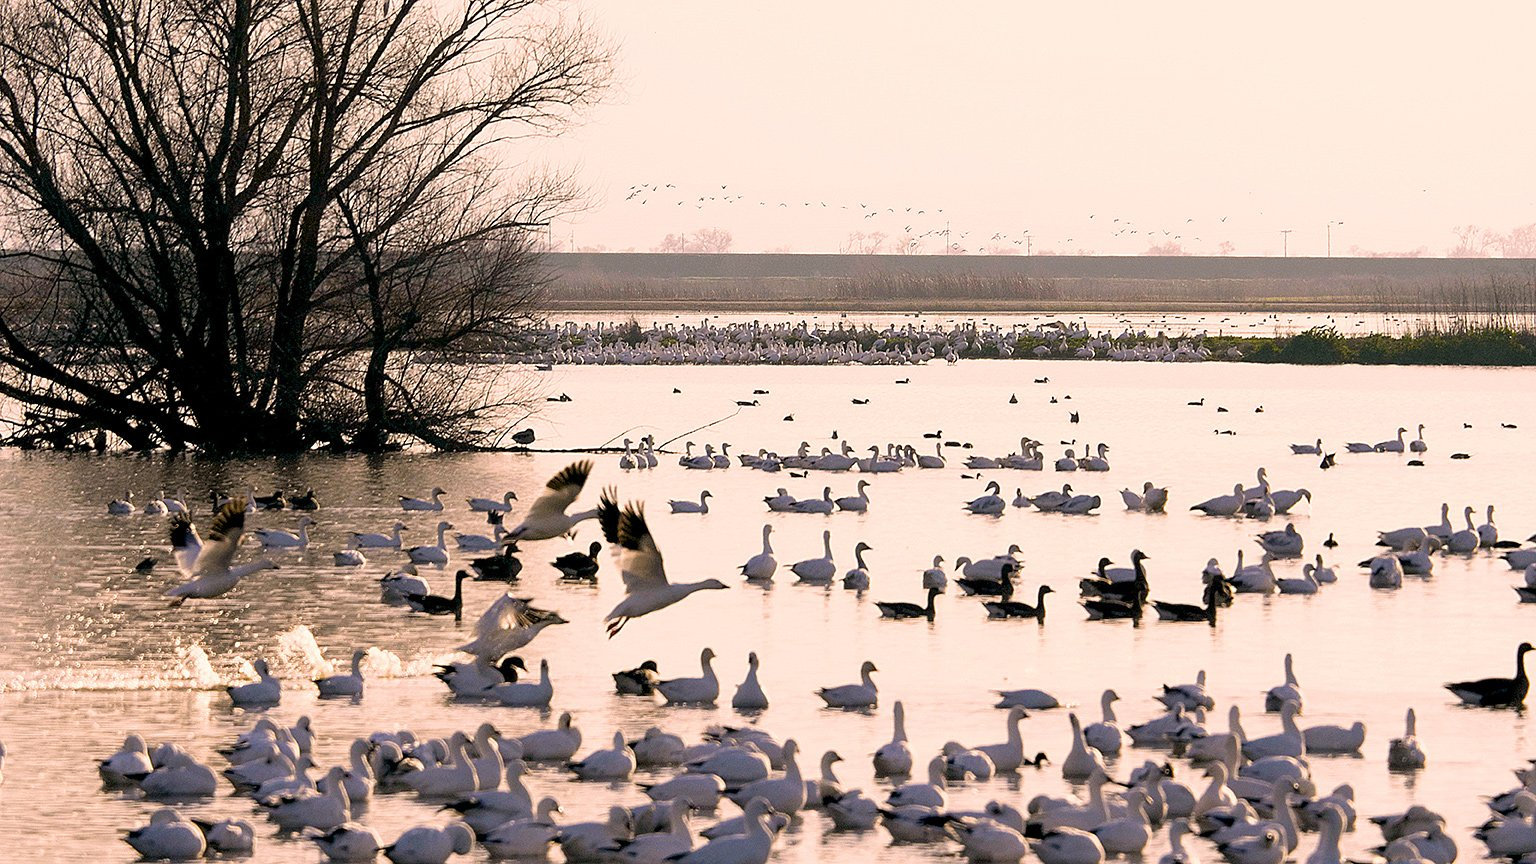 Video: It Takes a Gaggle, Winter Vacation With Snow Geese